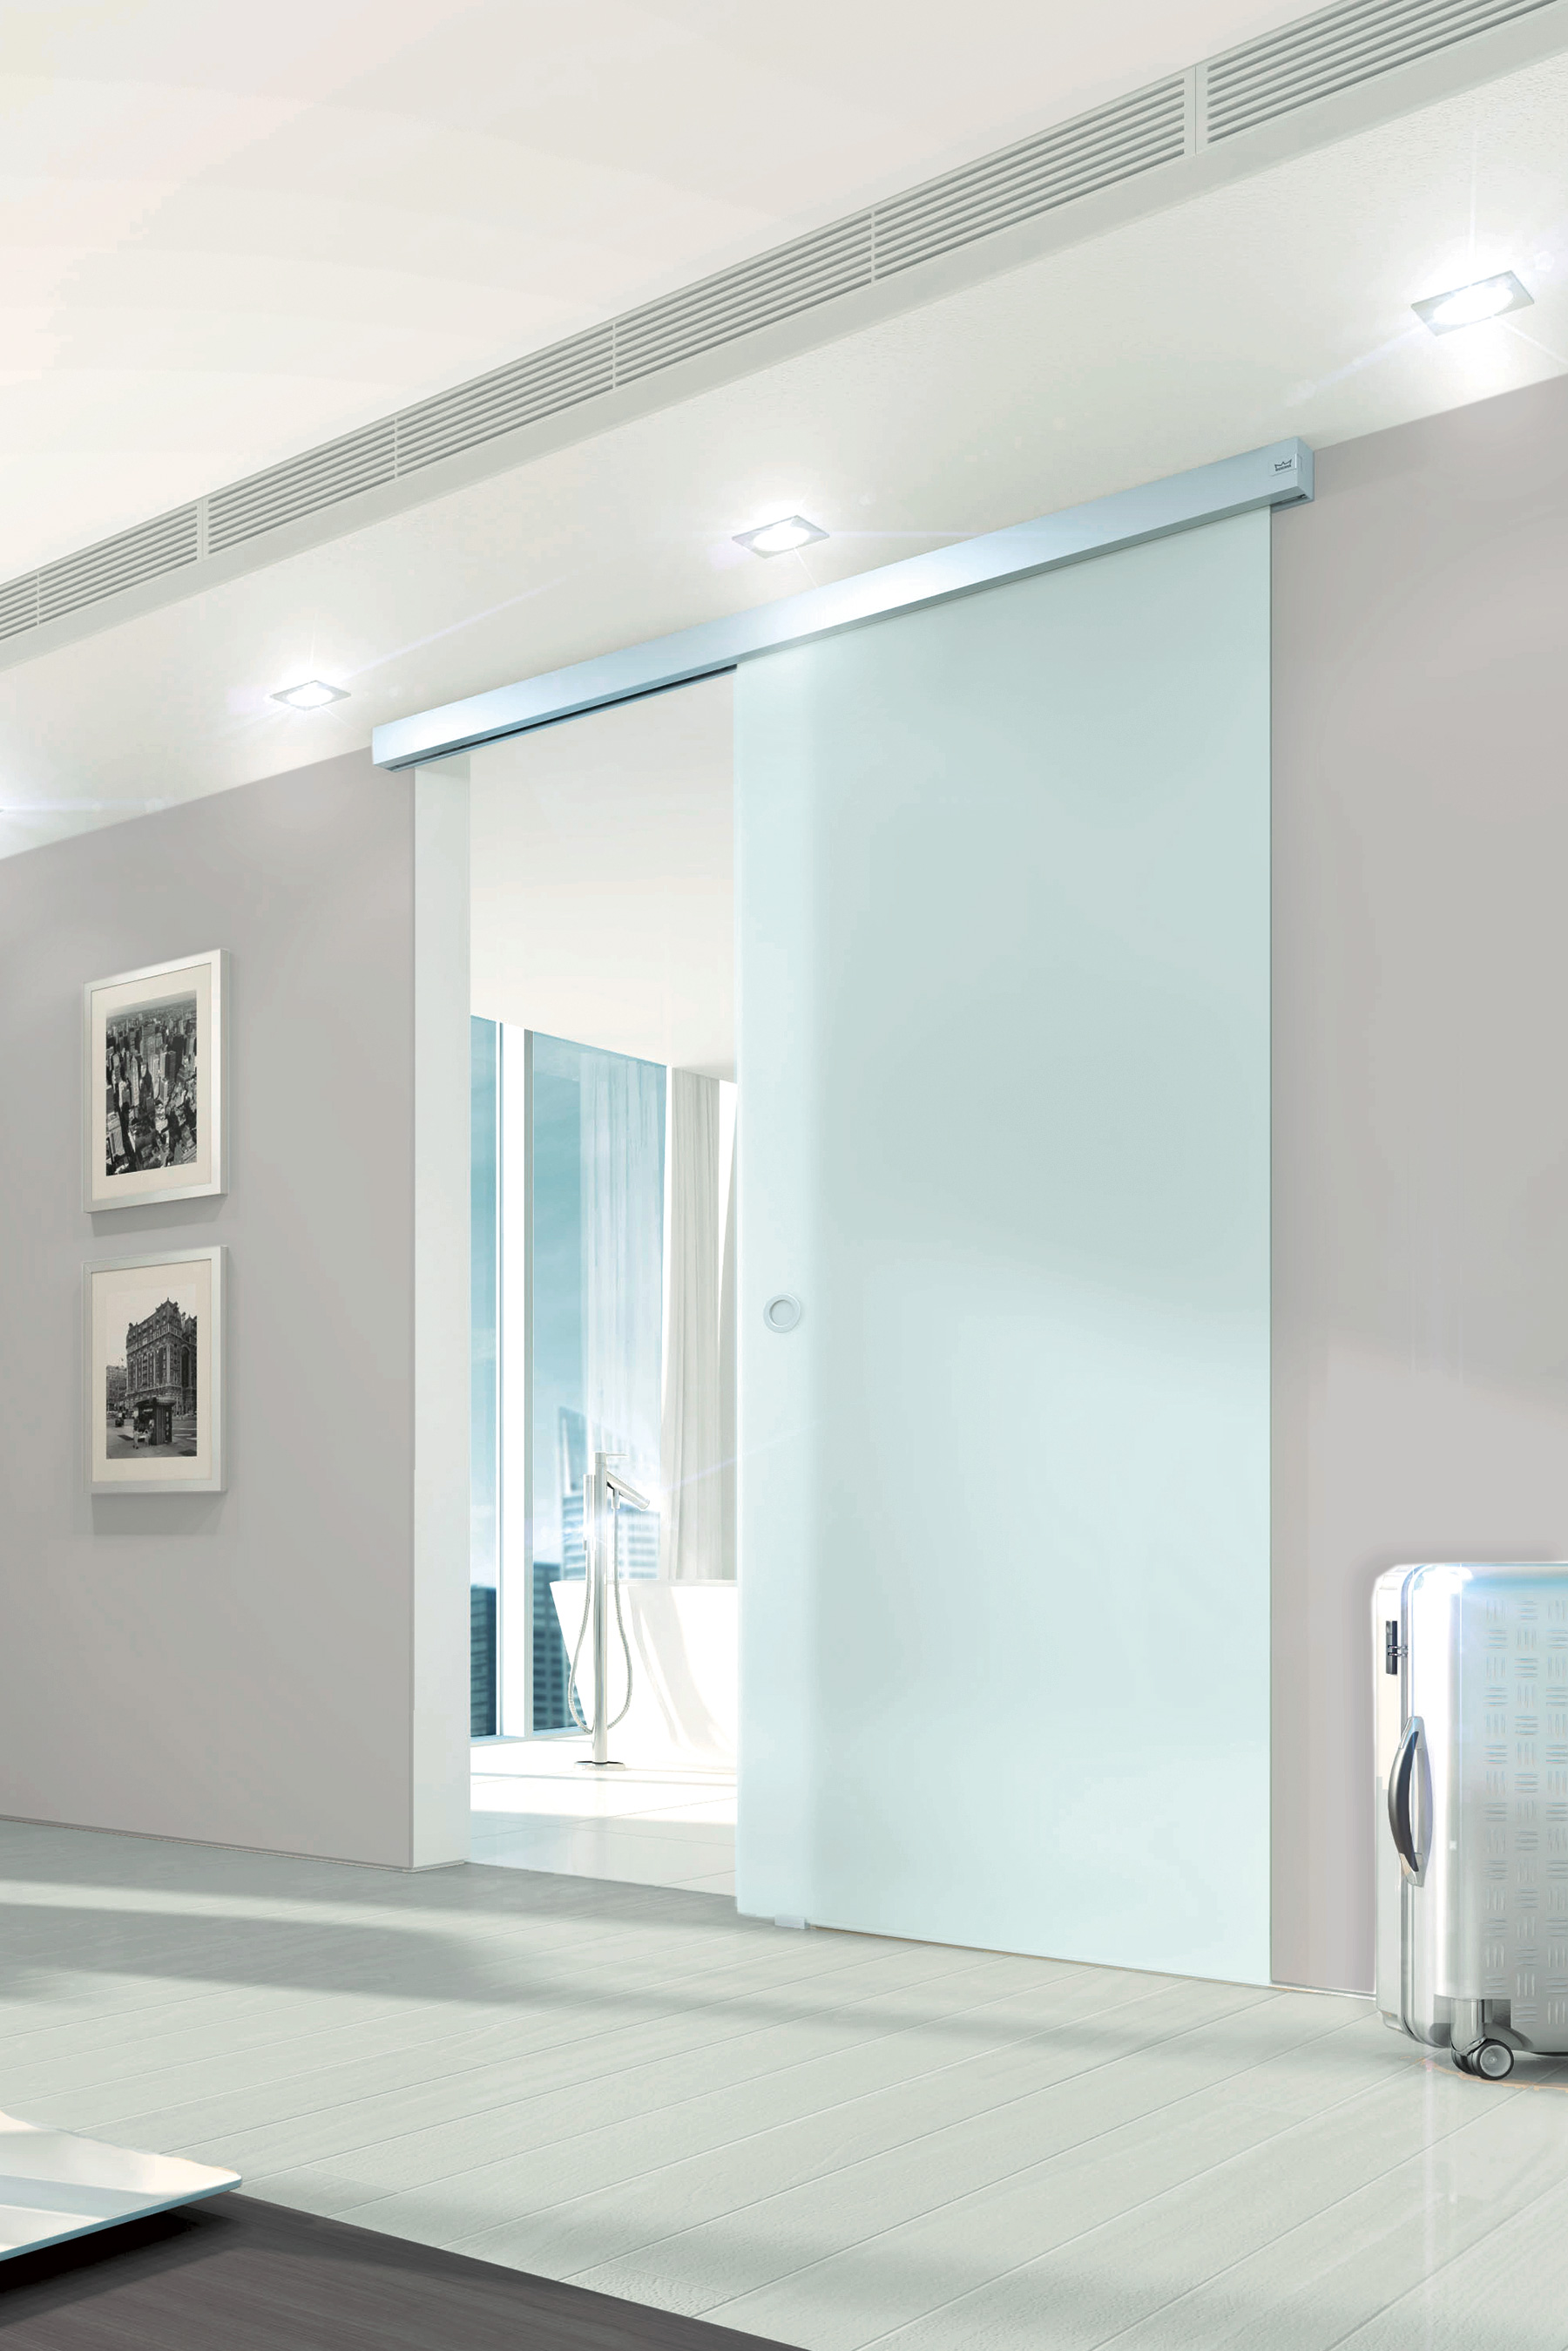 Dorma Americas Launches State Of The Art Sliding Door System